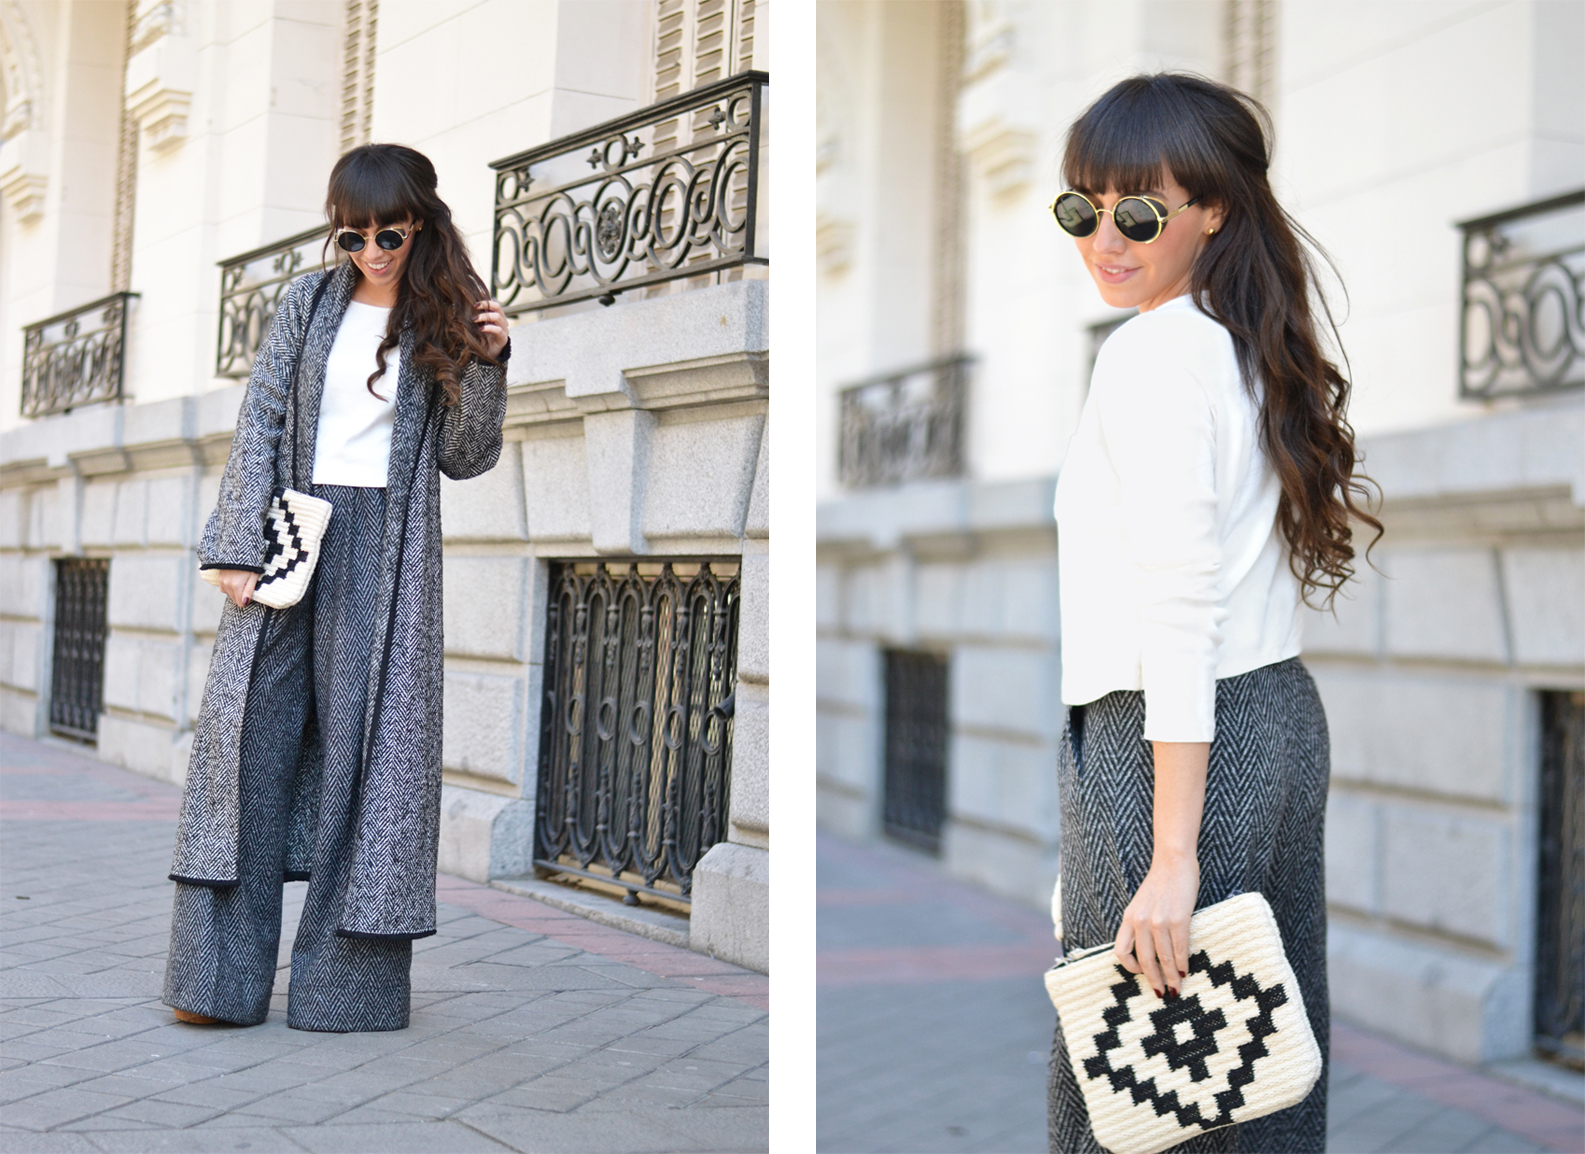 Street style, matchy-matchy style, co-ord outfit, winter palazzo pants, long coat